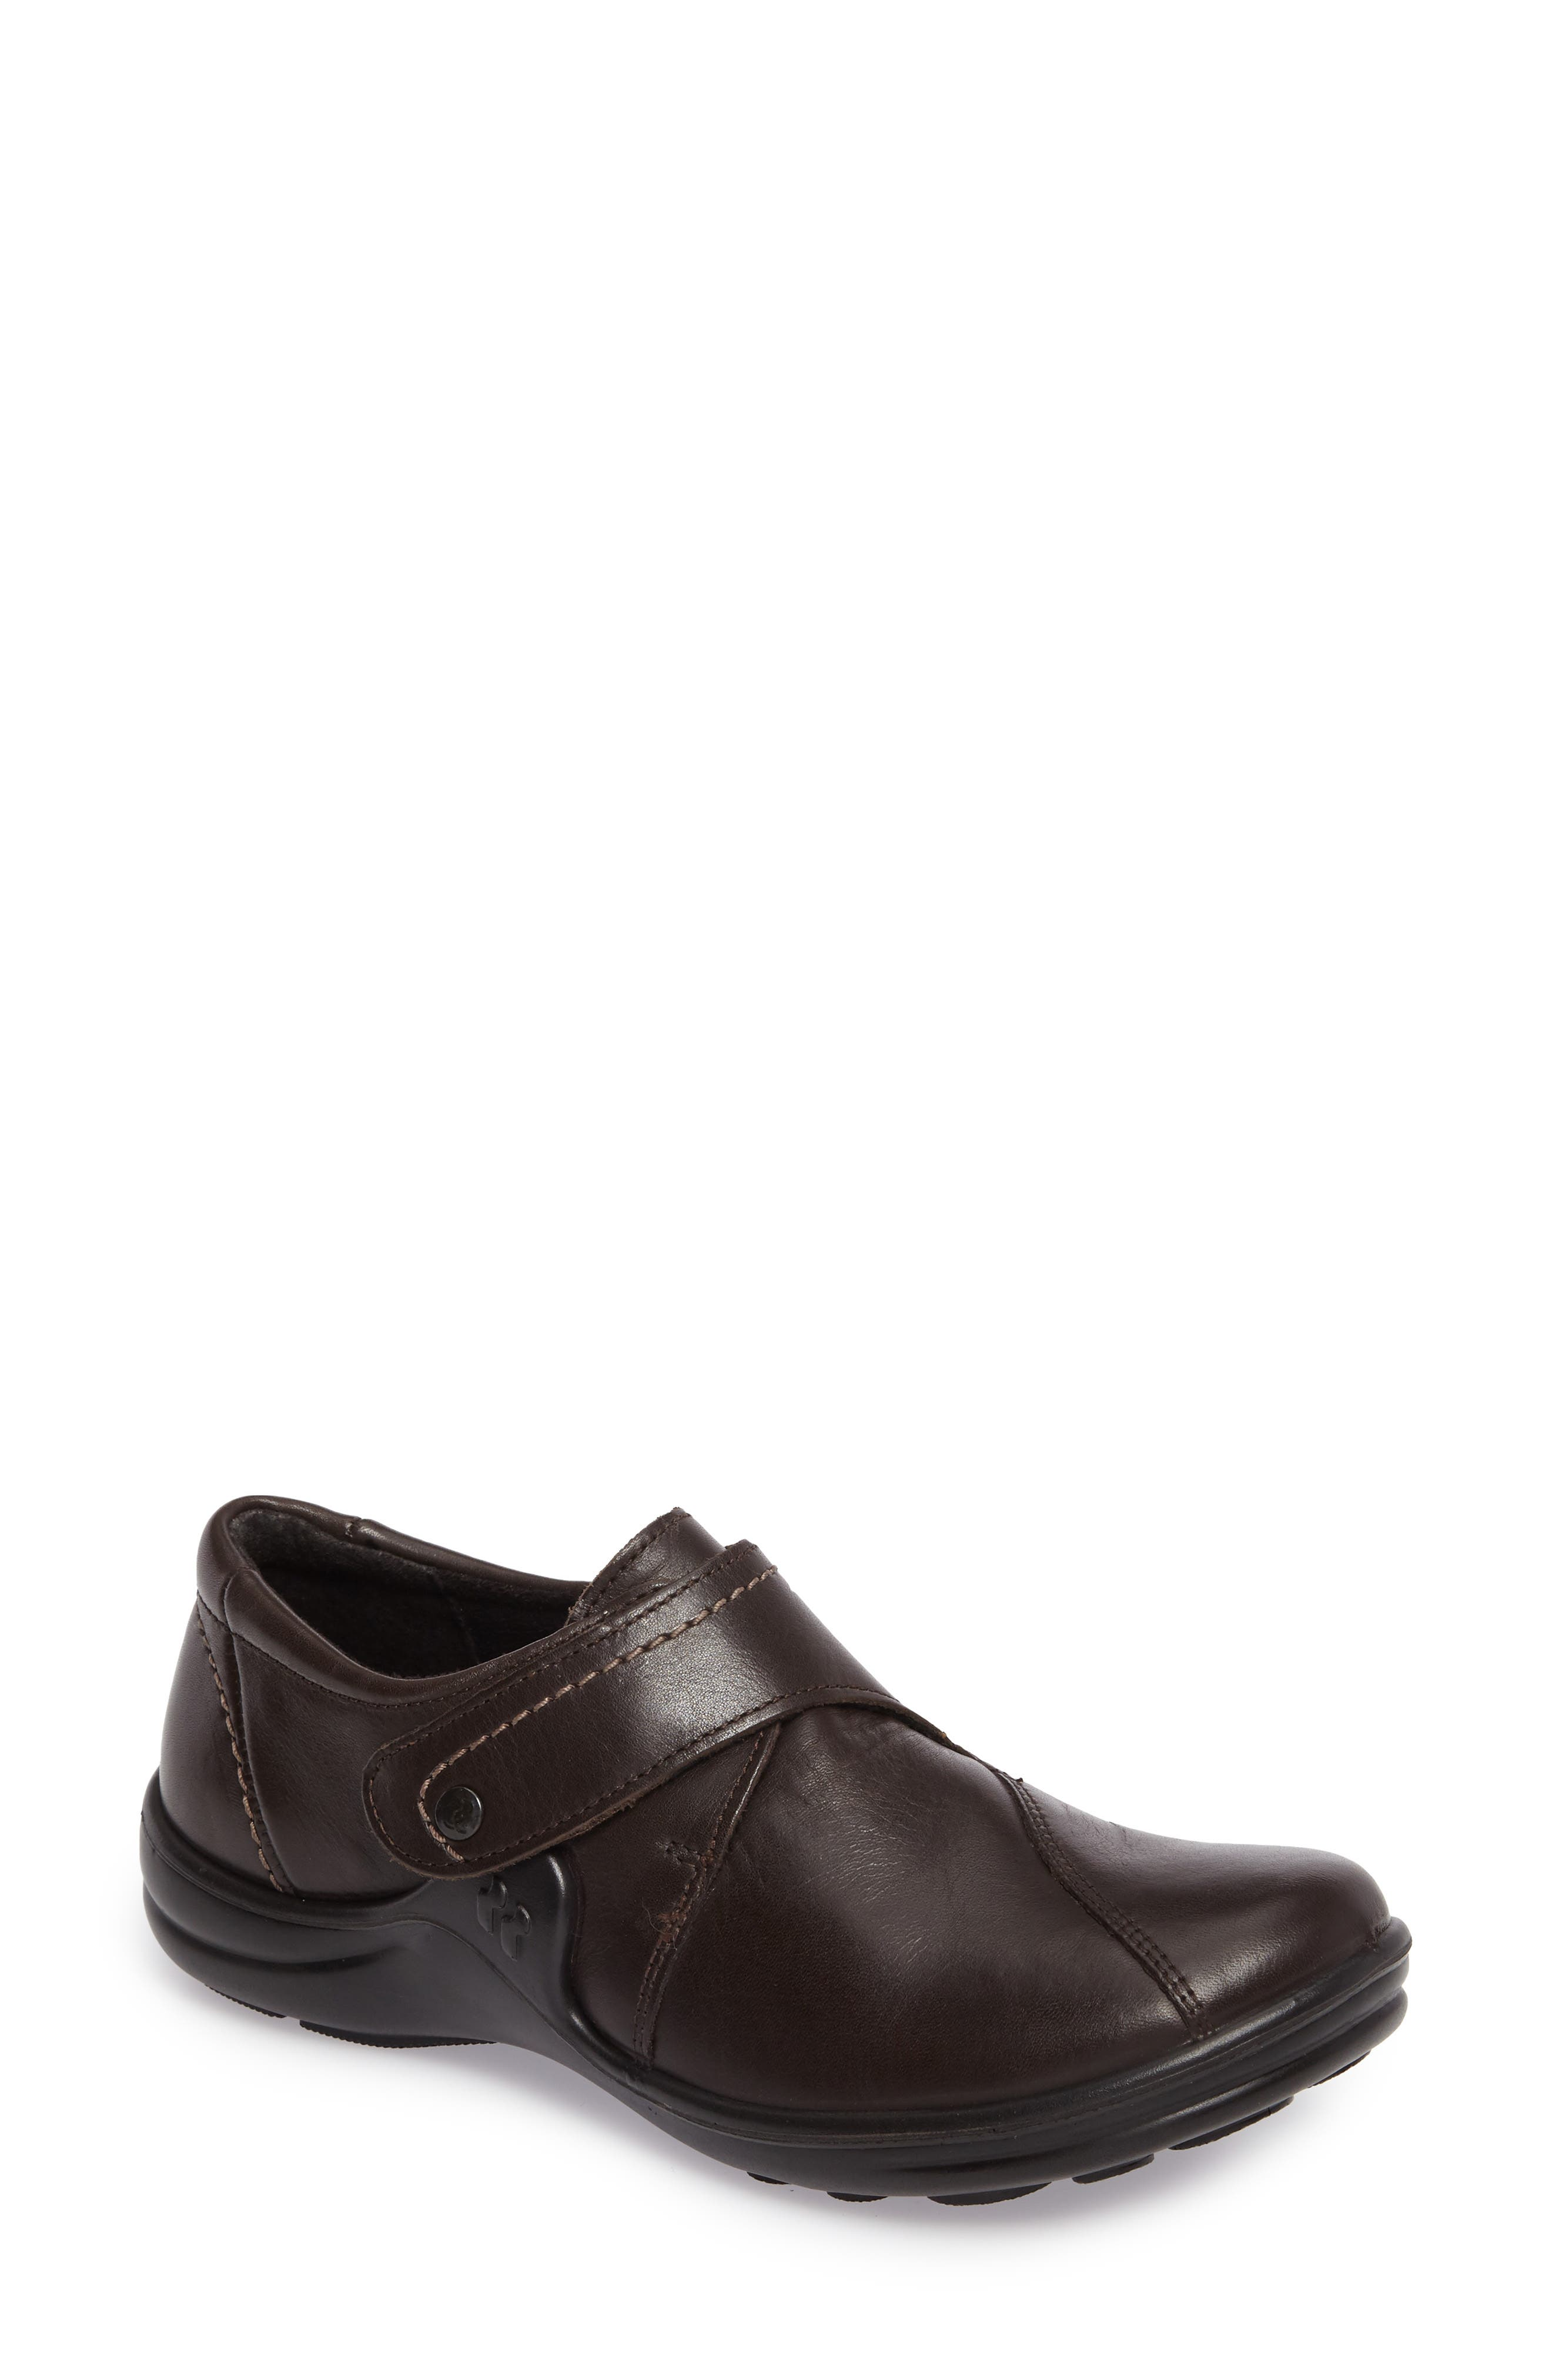 'Maddy 04' Slip-On Flat,                         Main,                         color, Moro Leather